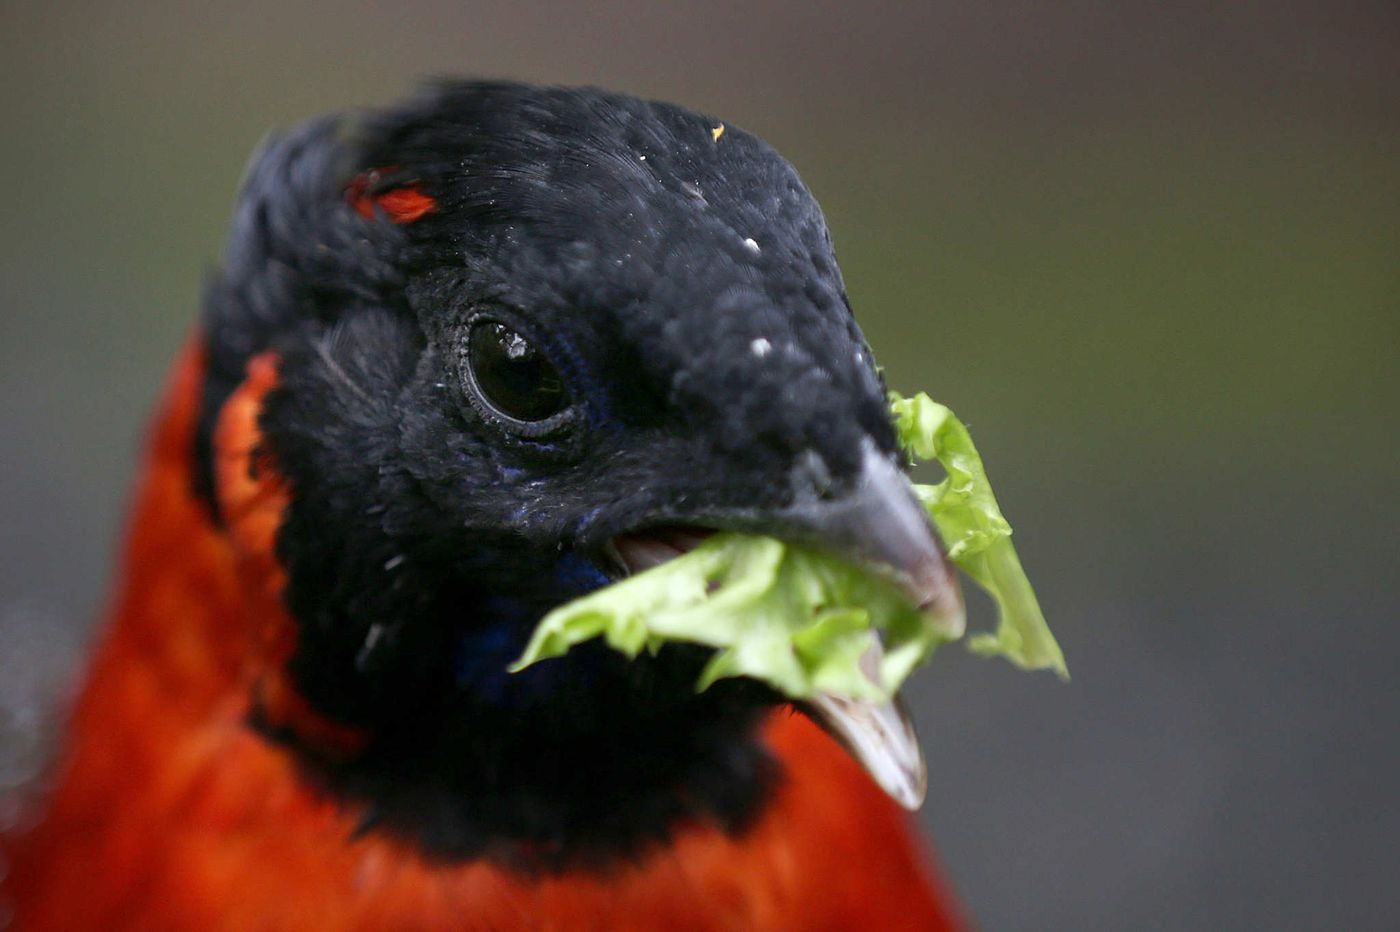 Camden County feeds the primates, the birds and more at Philly's zoo